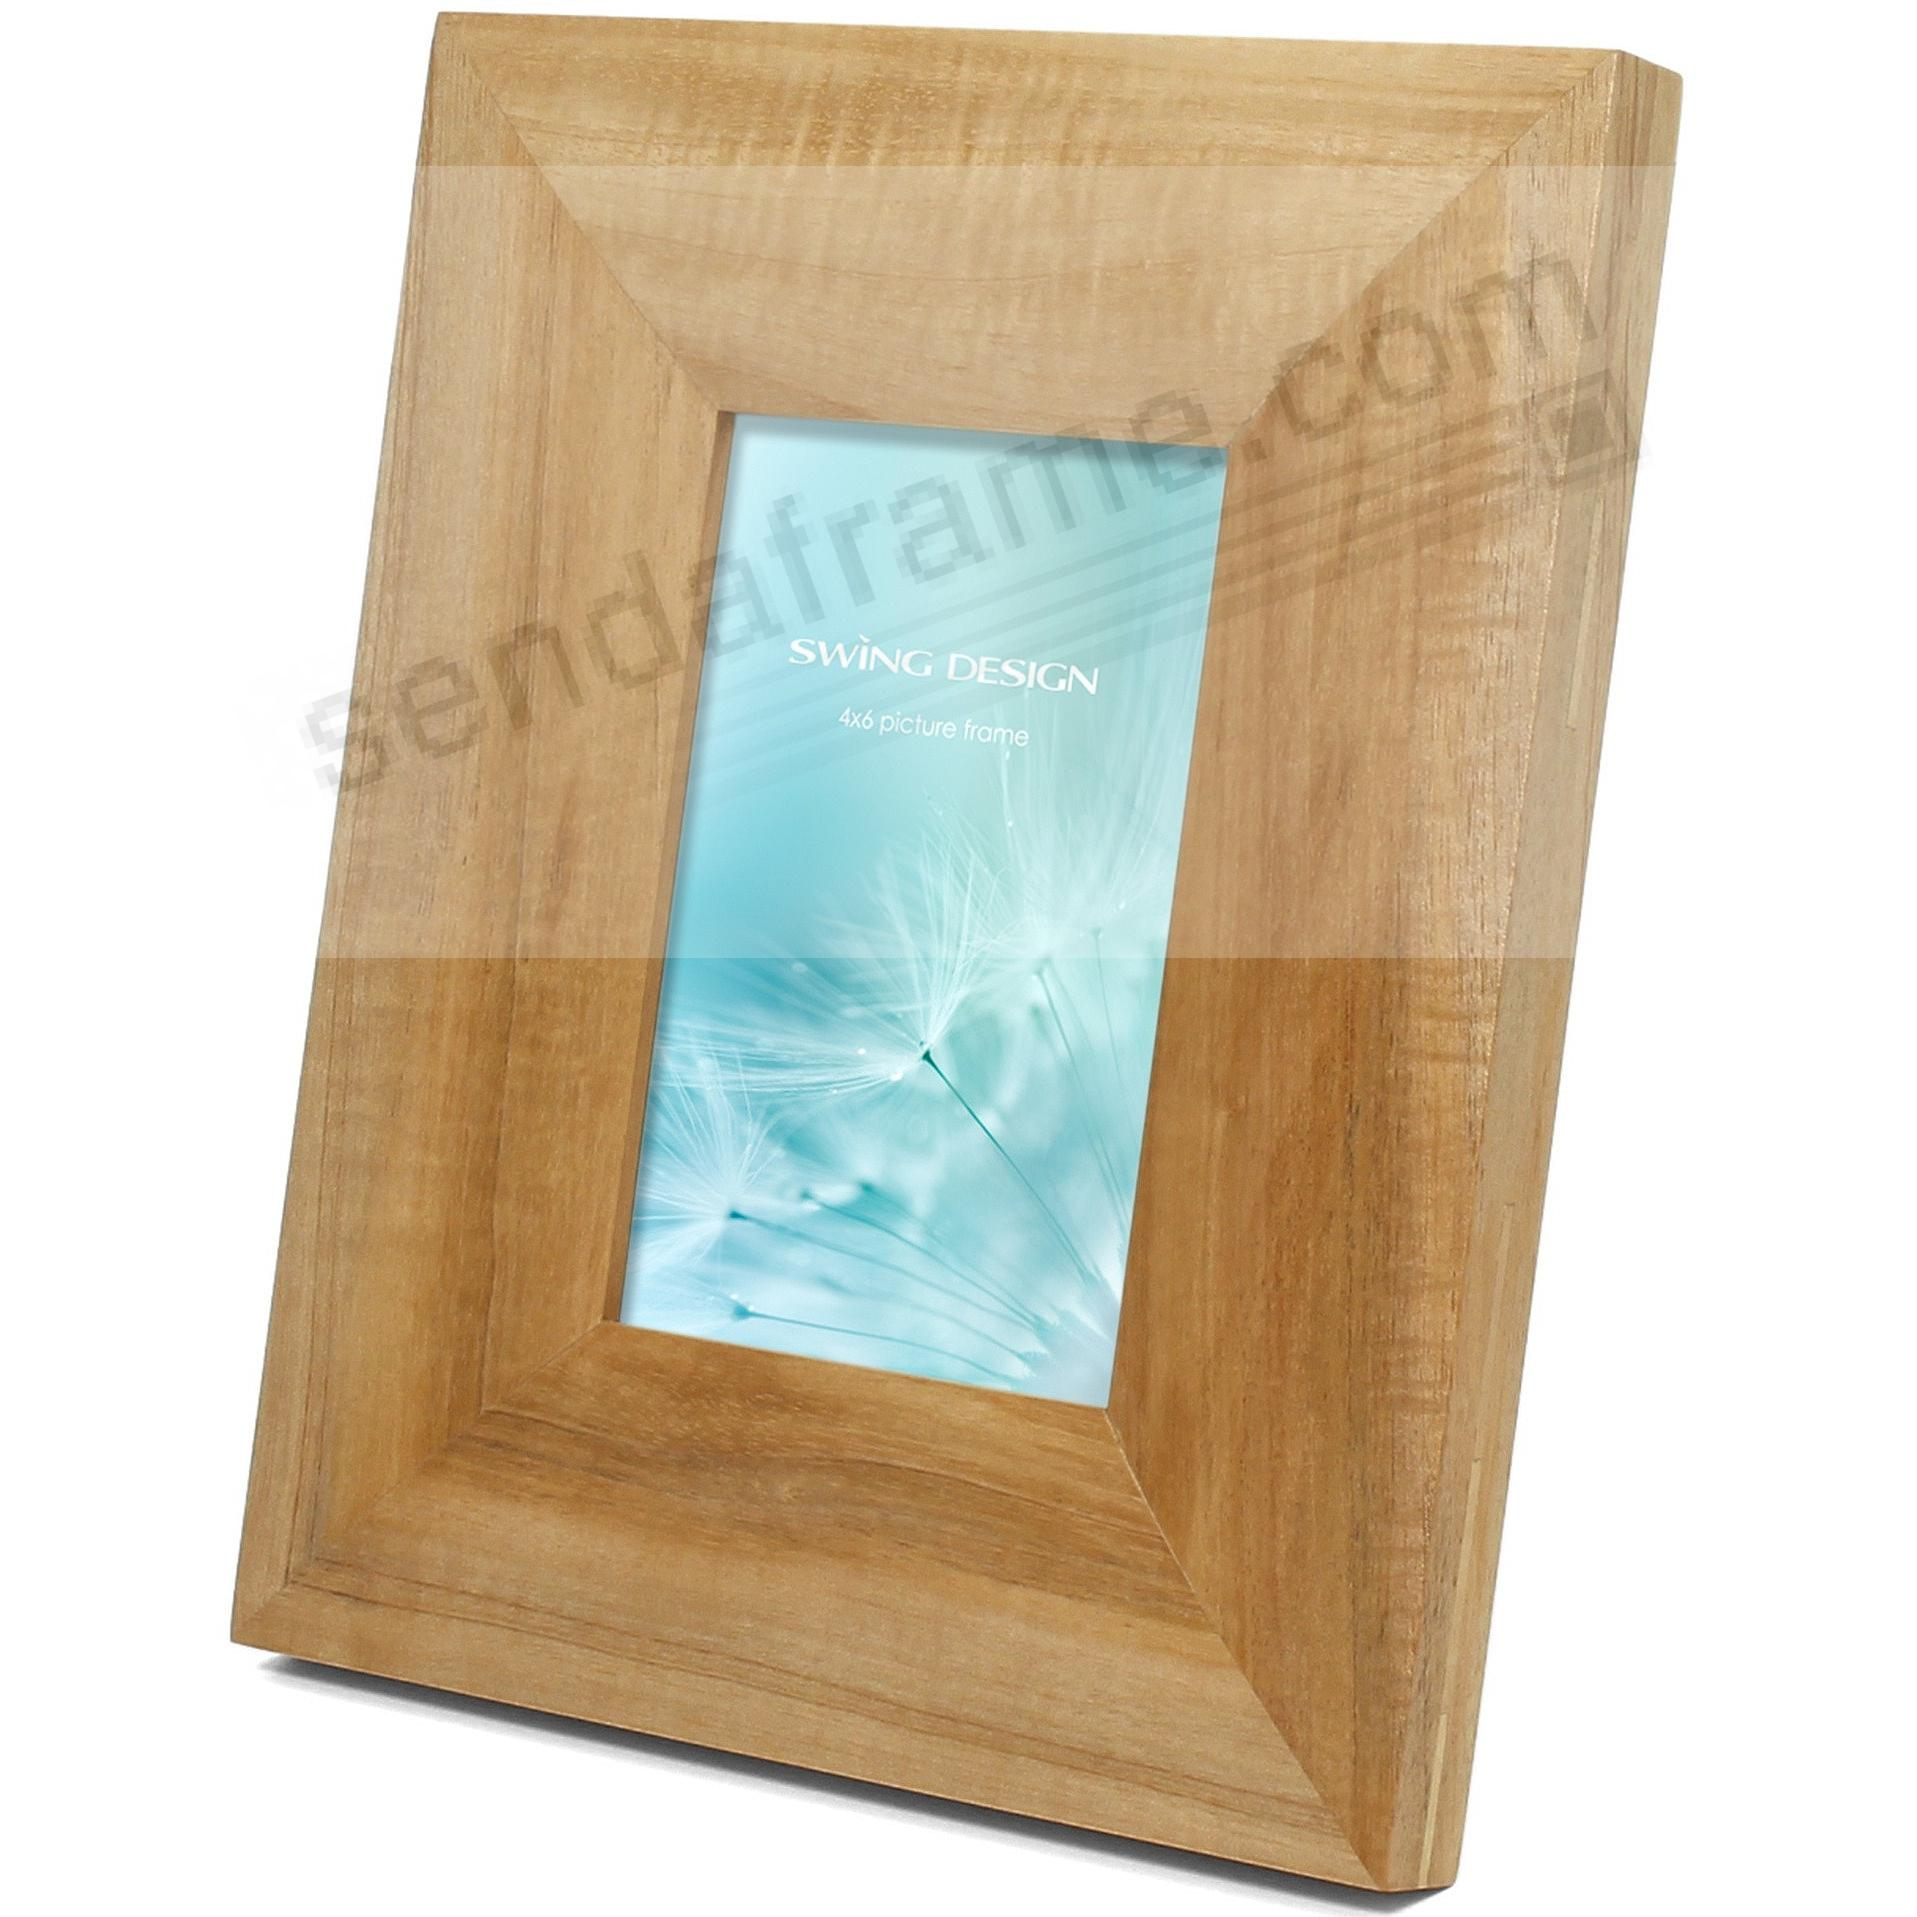 The ARTISAN Natural Solid MARAGOSA 4x6 frame by Swing Design®